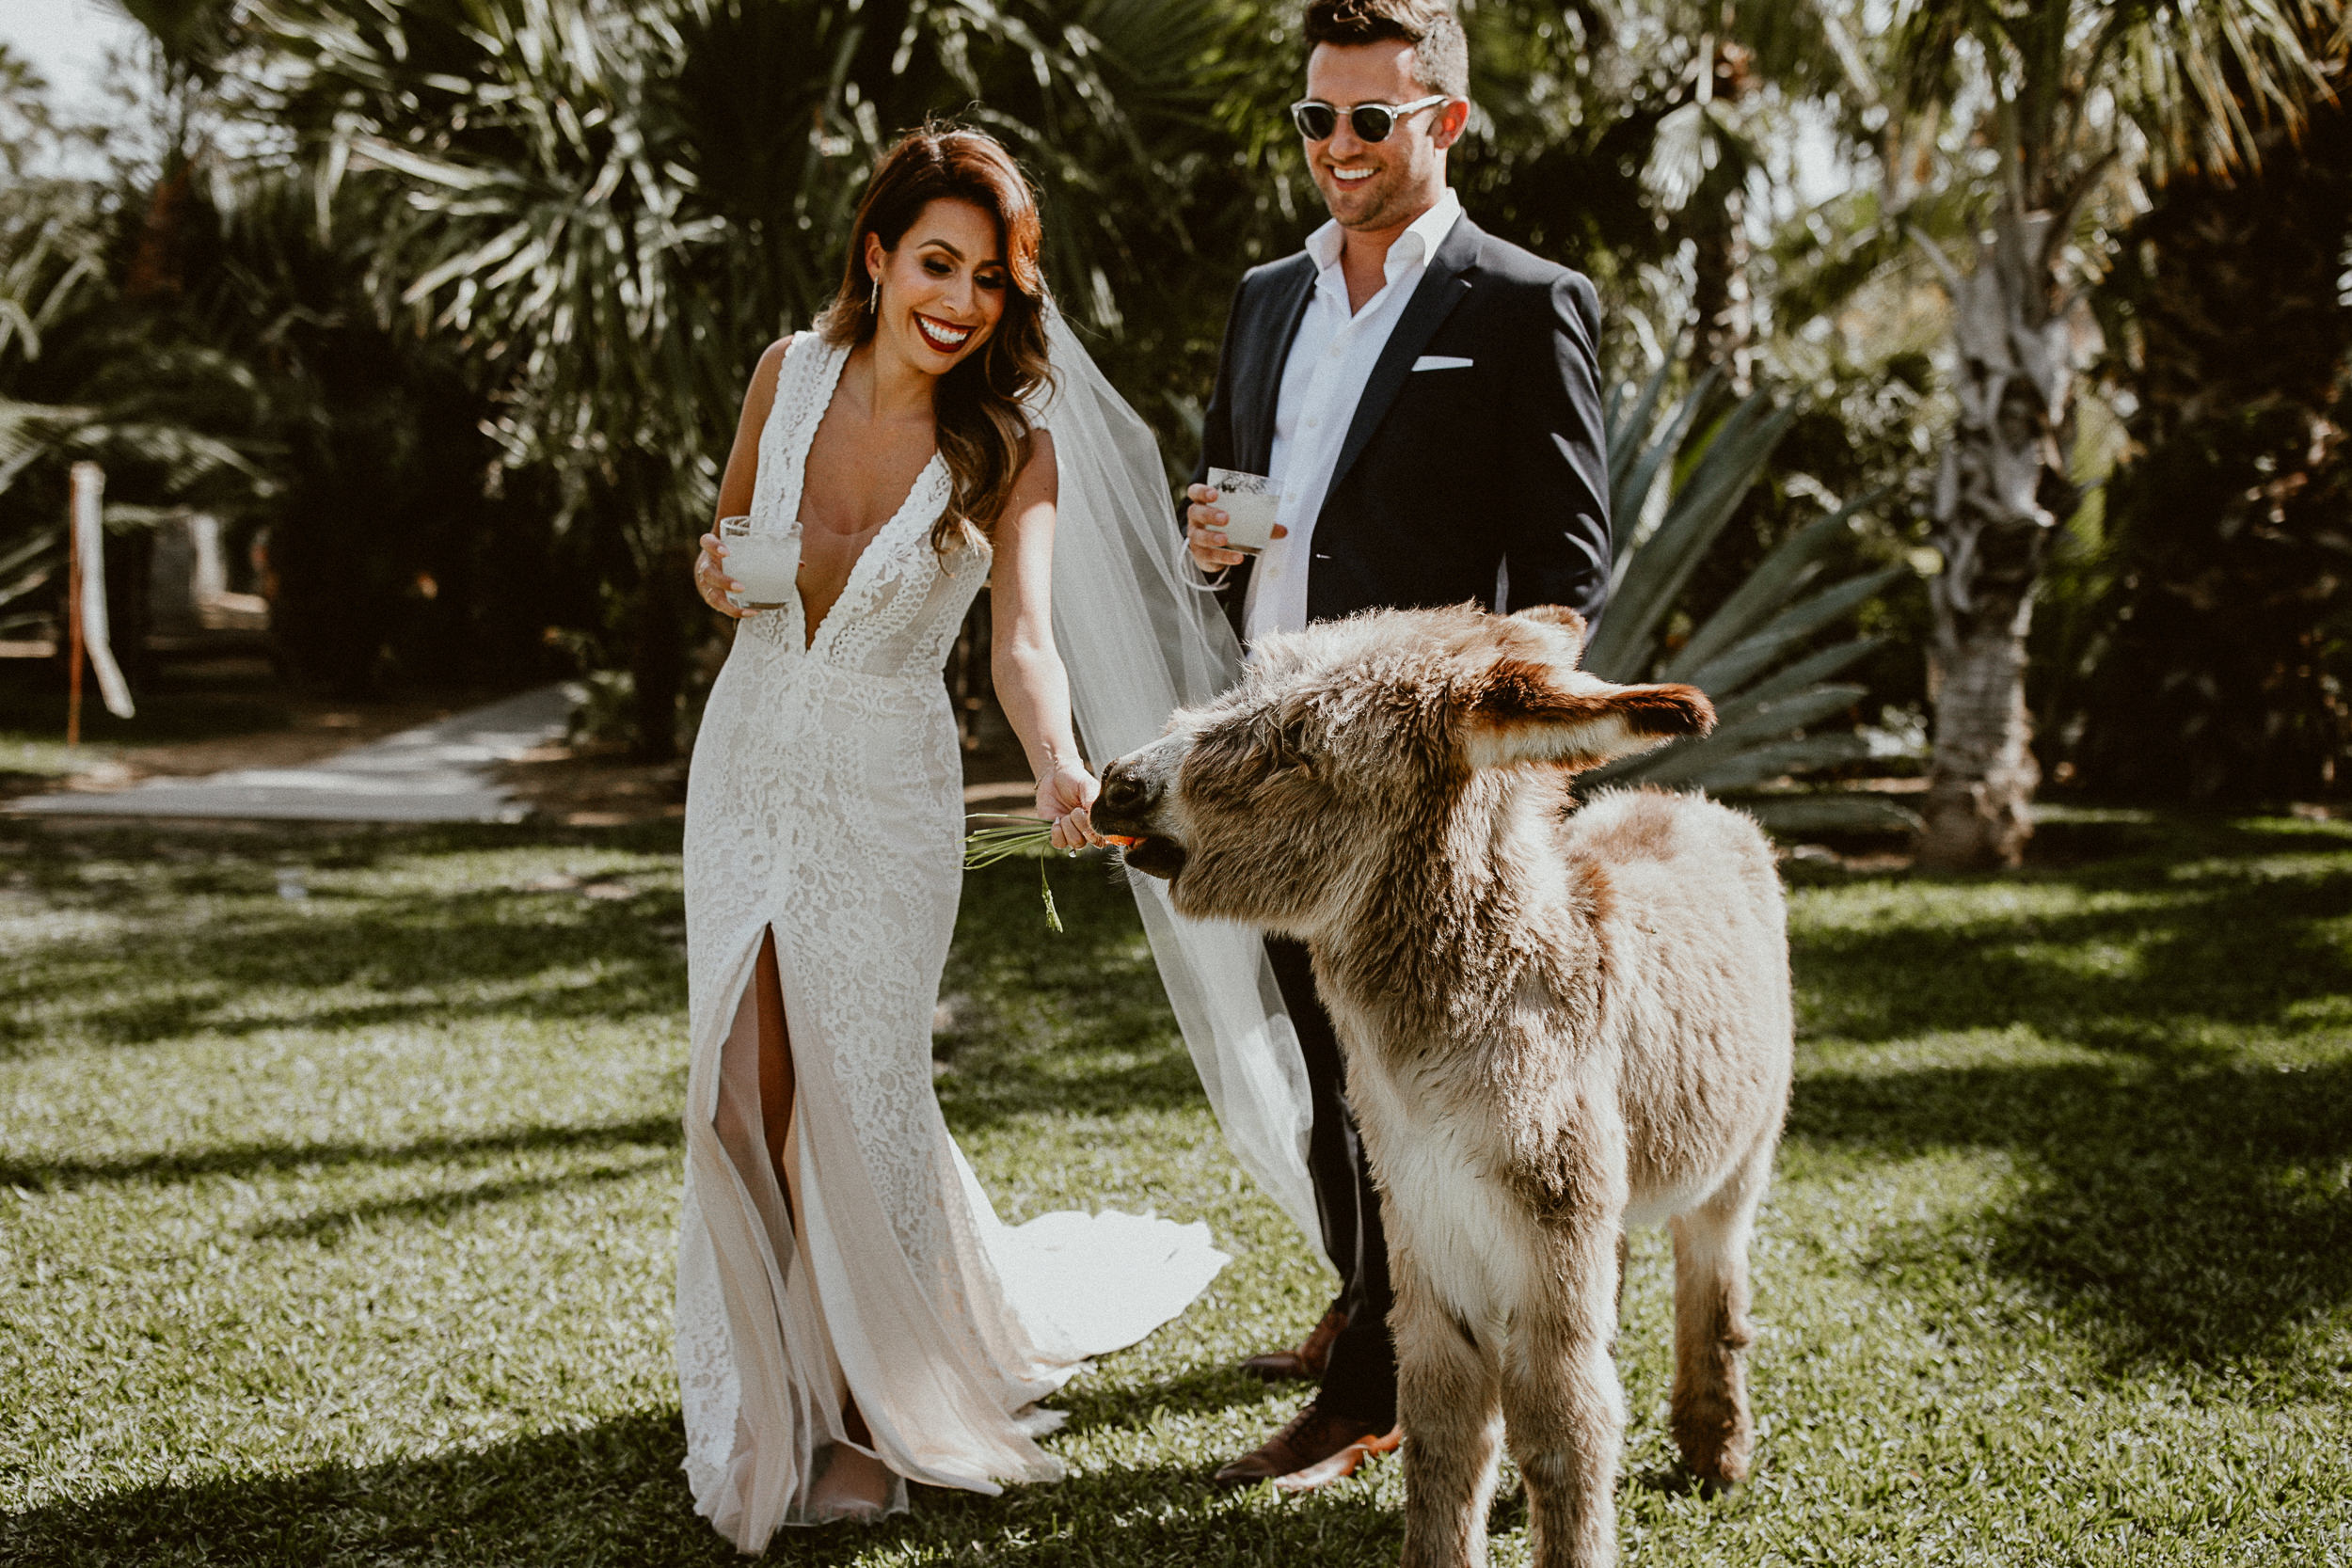 Burrito the Baby Donkey at ACRE in Los Cabos Mexico. Fun Bride + Groom Photo from Everyday Pursuits Wedding.